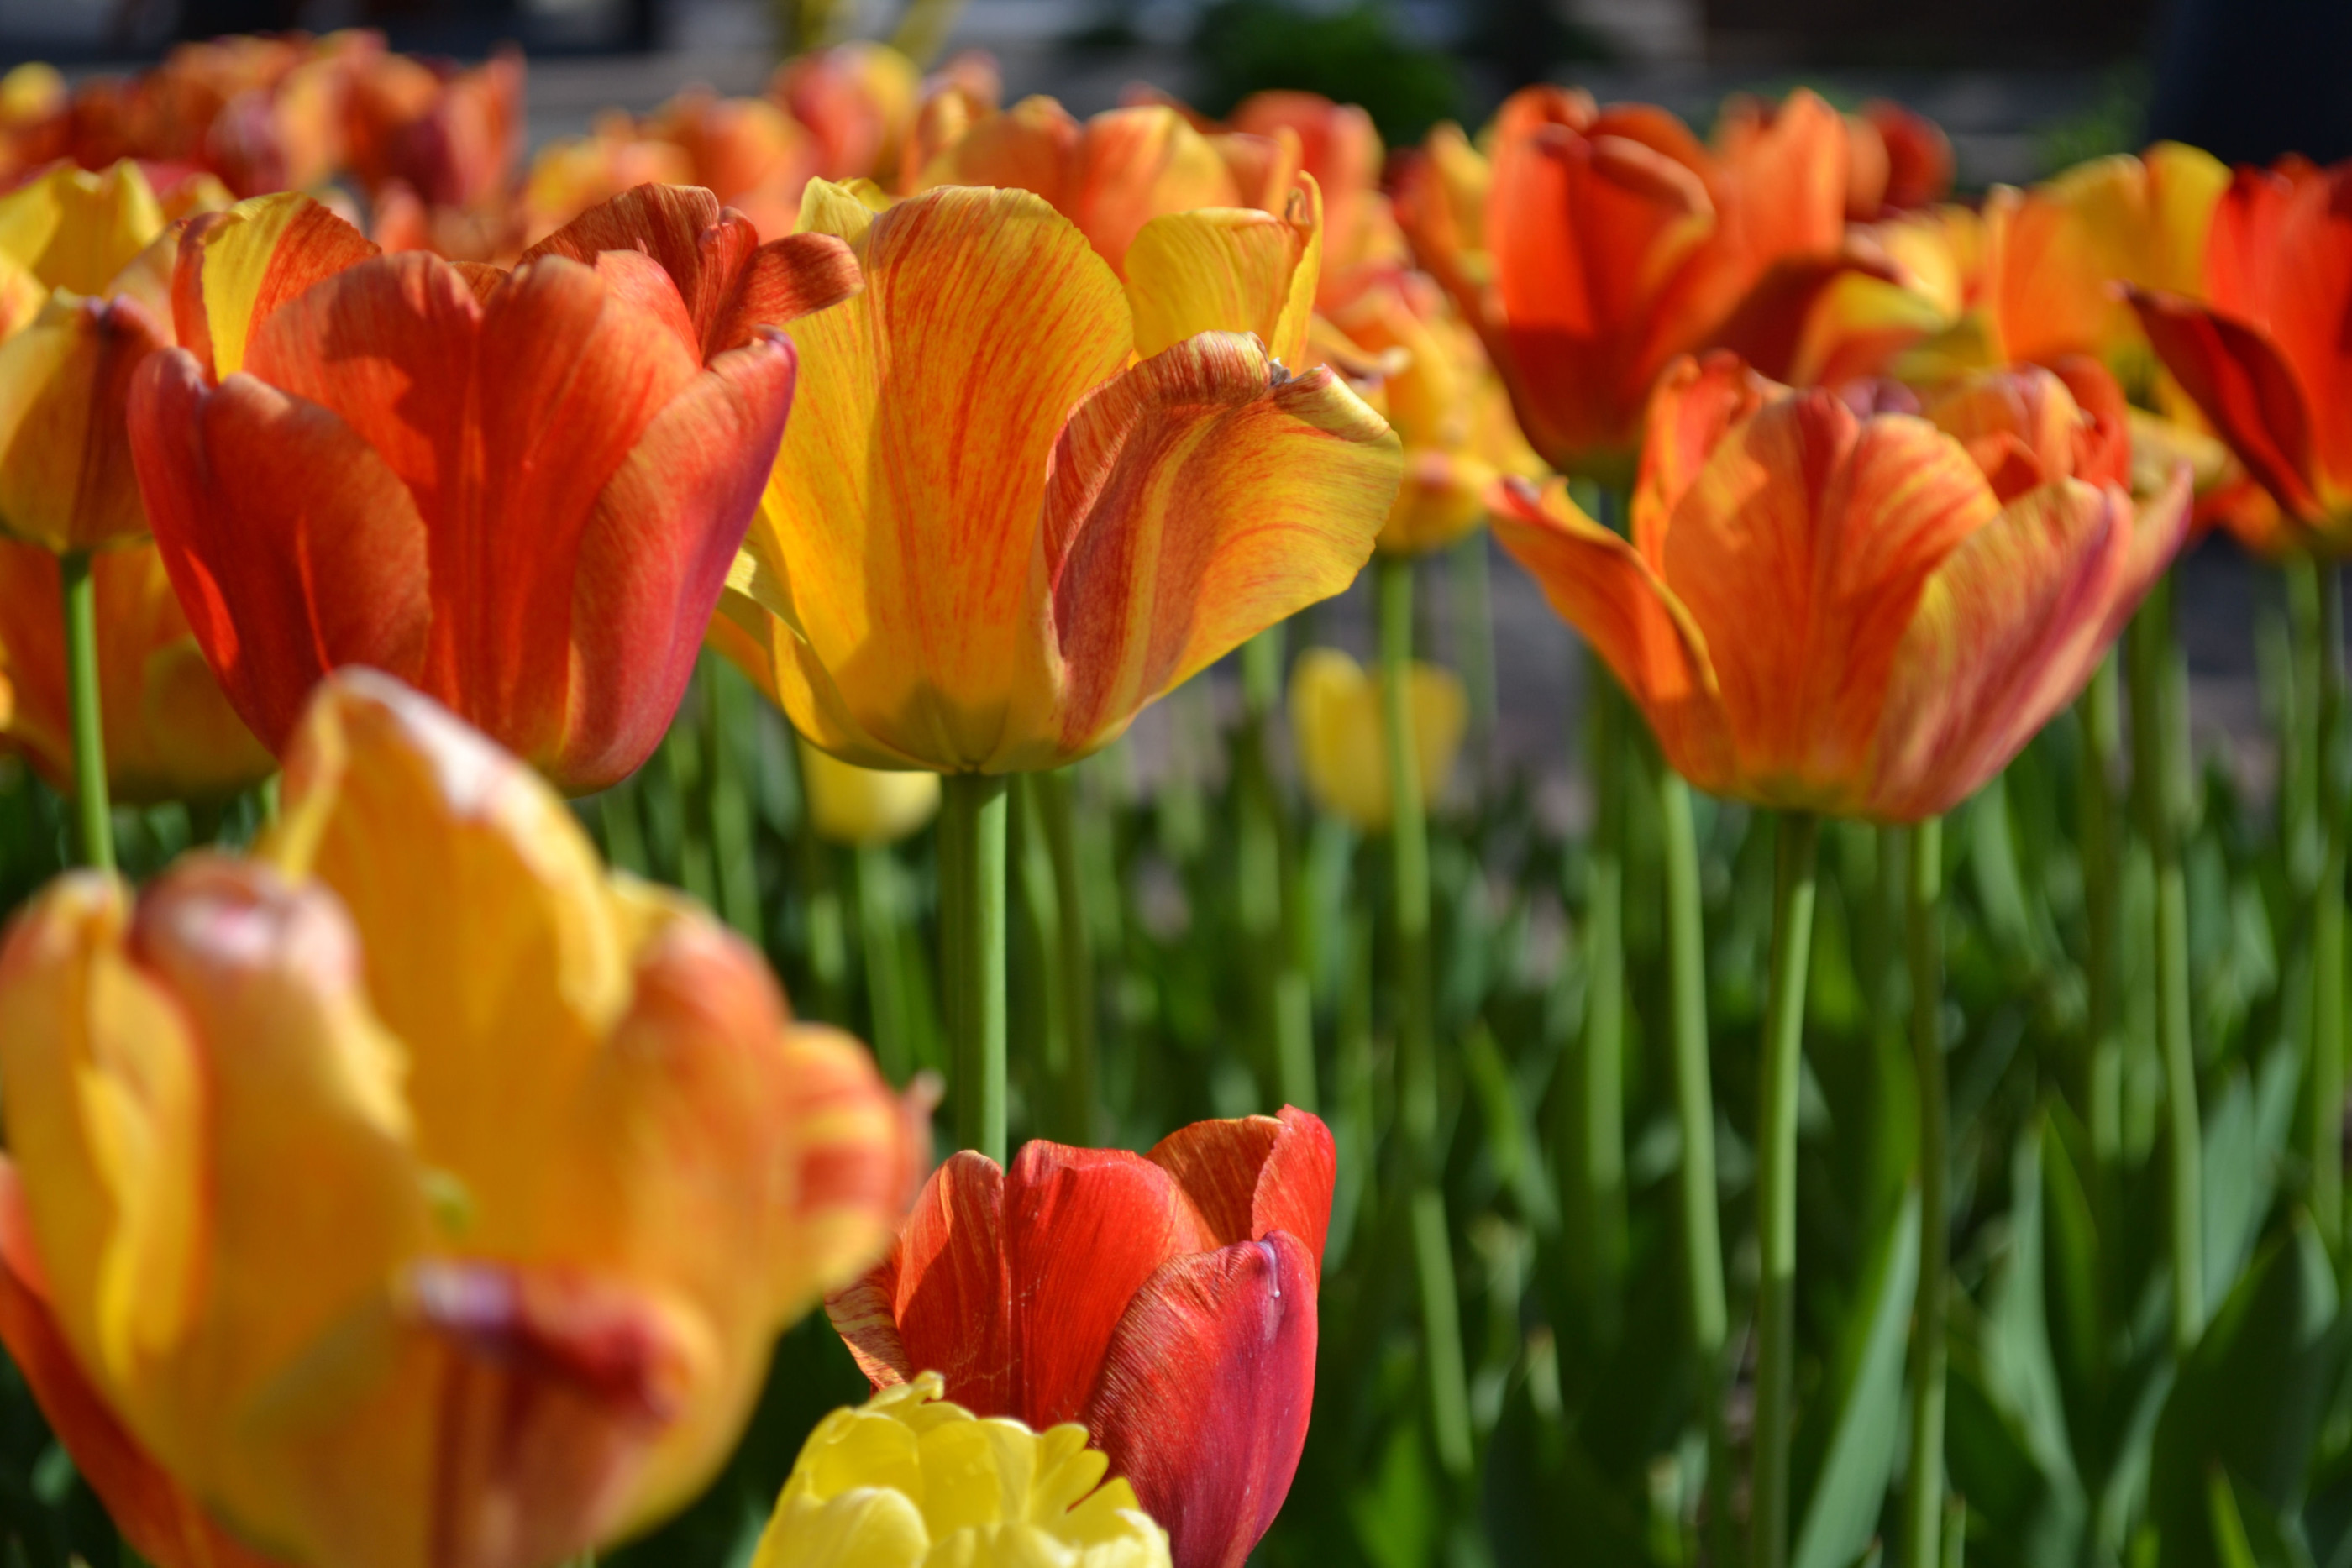 A patch of orange tulips in bloom